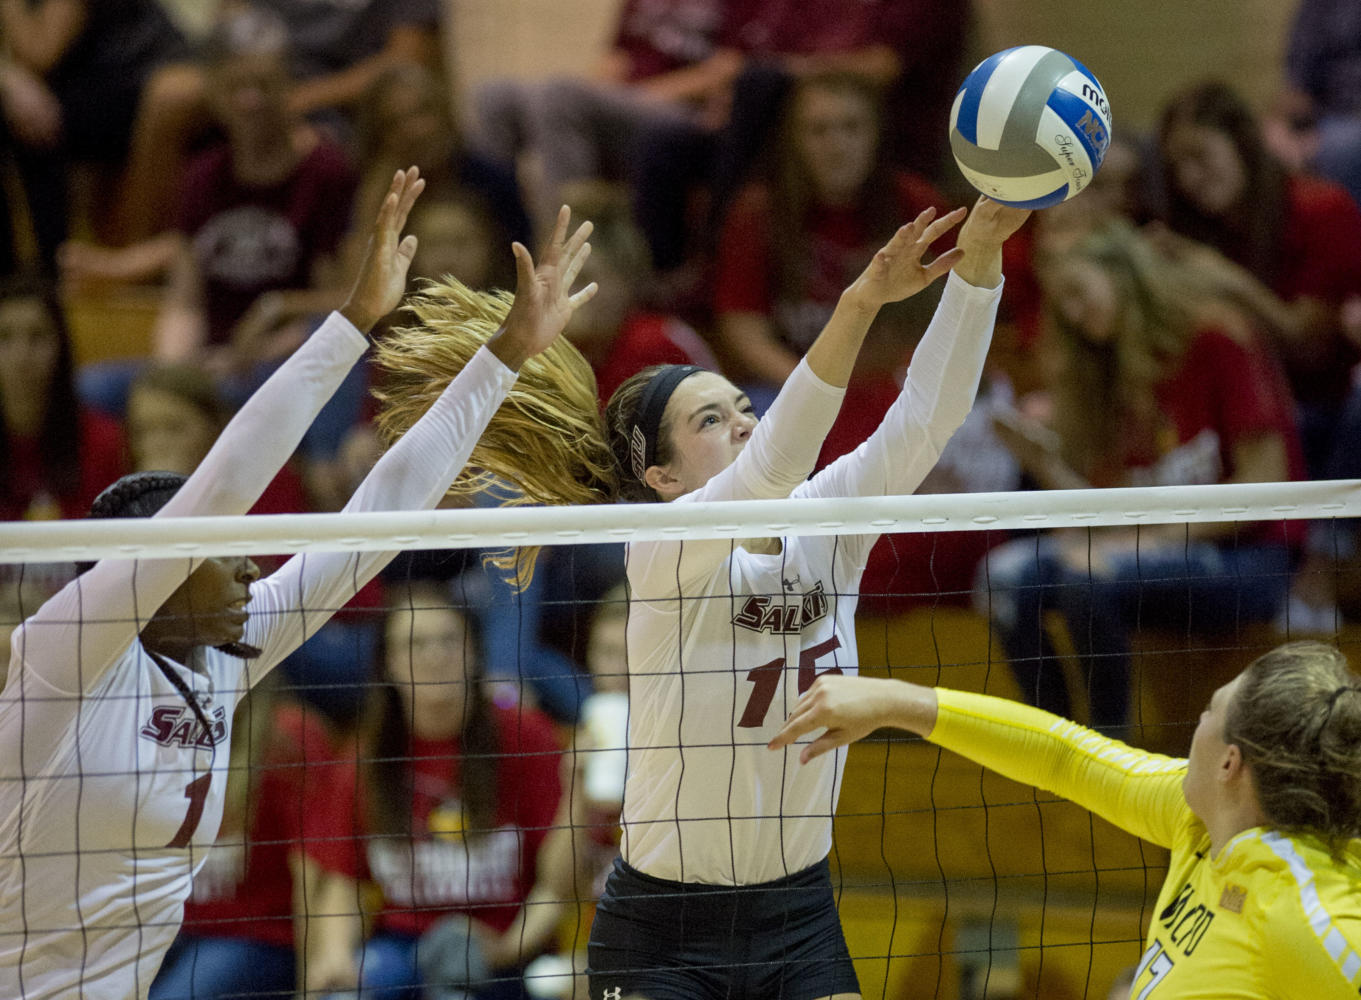 Senior middle hitter Kolby Meeks (left) and senior outside hitter Abby Barrow (right) block the ball Monday, Sept. 25, 2017, during the Salukis' 2-1 win against Valparaiso University at Davies Gym. (Dylan Nelson | @Dylan_Nelson99)